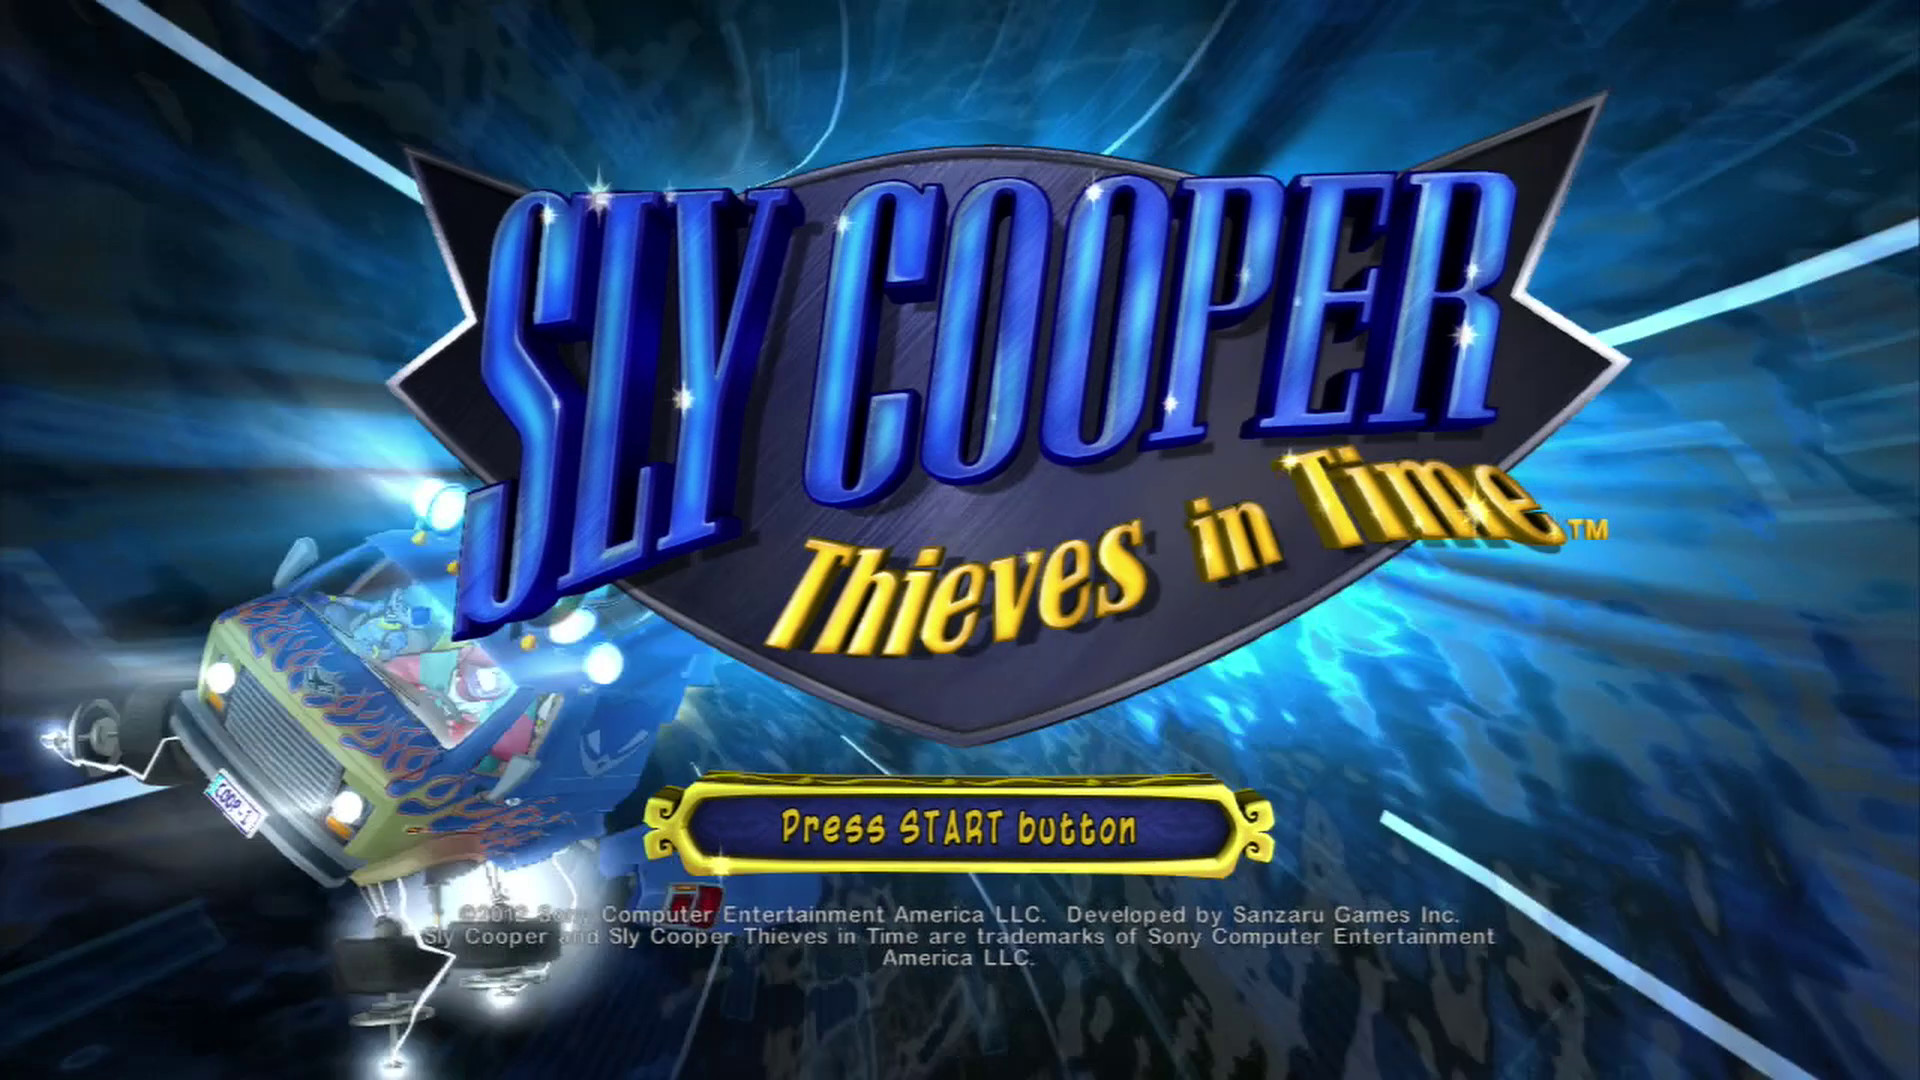 Sly Cooper: Thieves in Time (PS Vita / PlayStation TV) Video Review